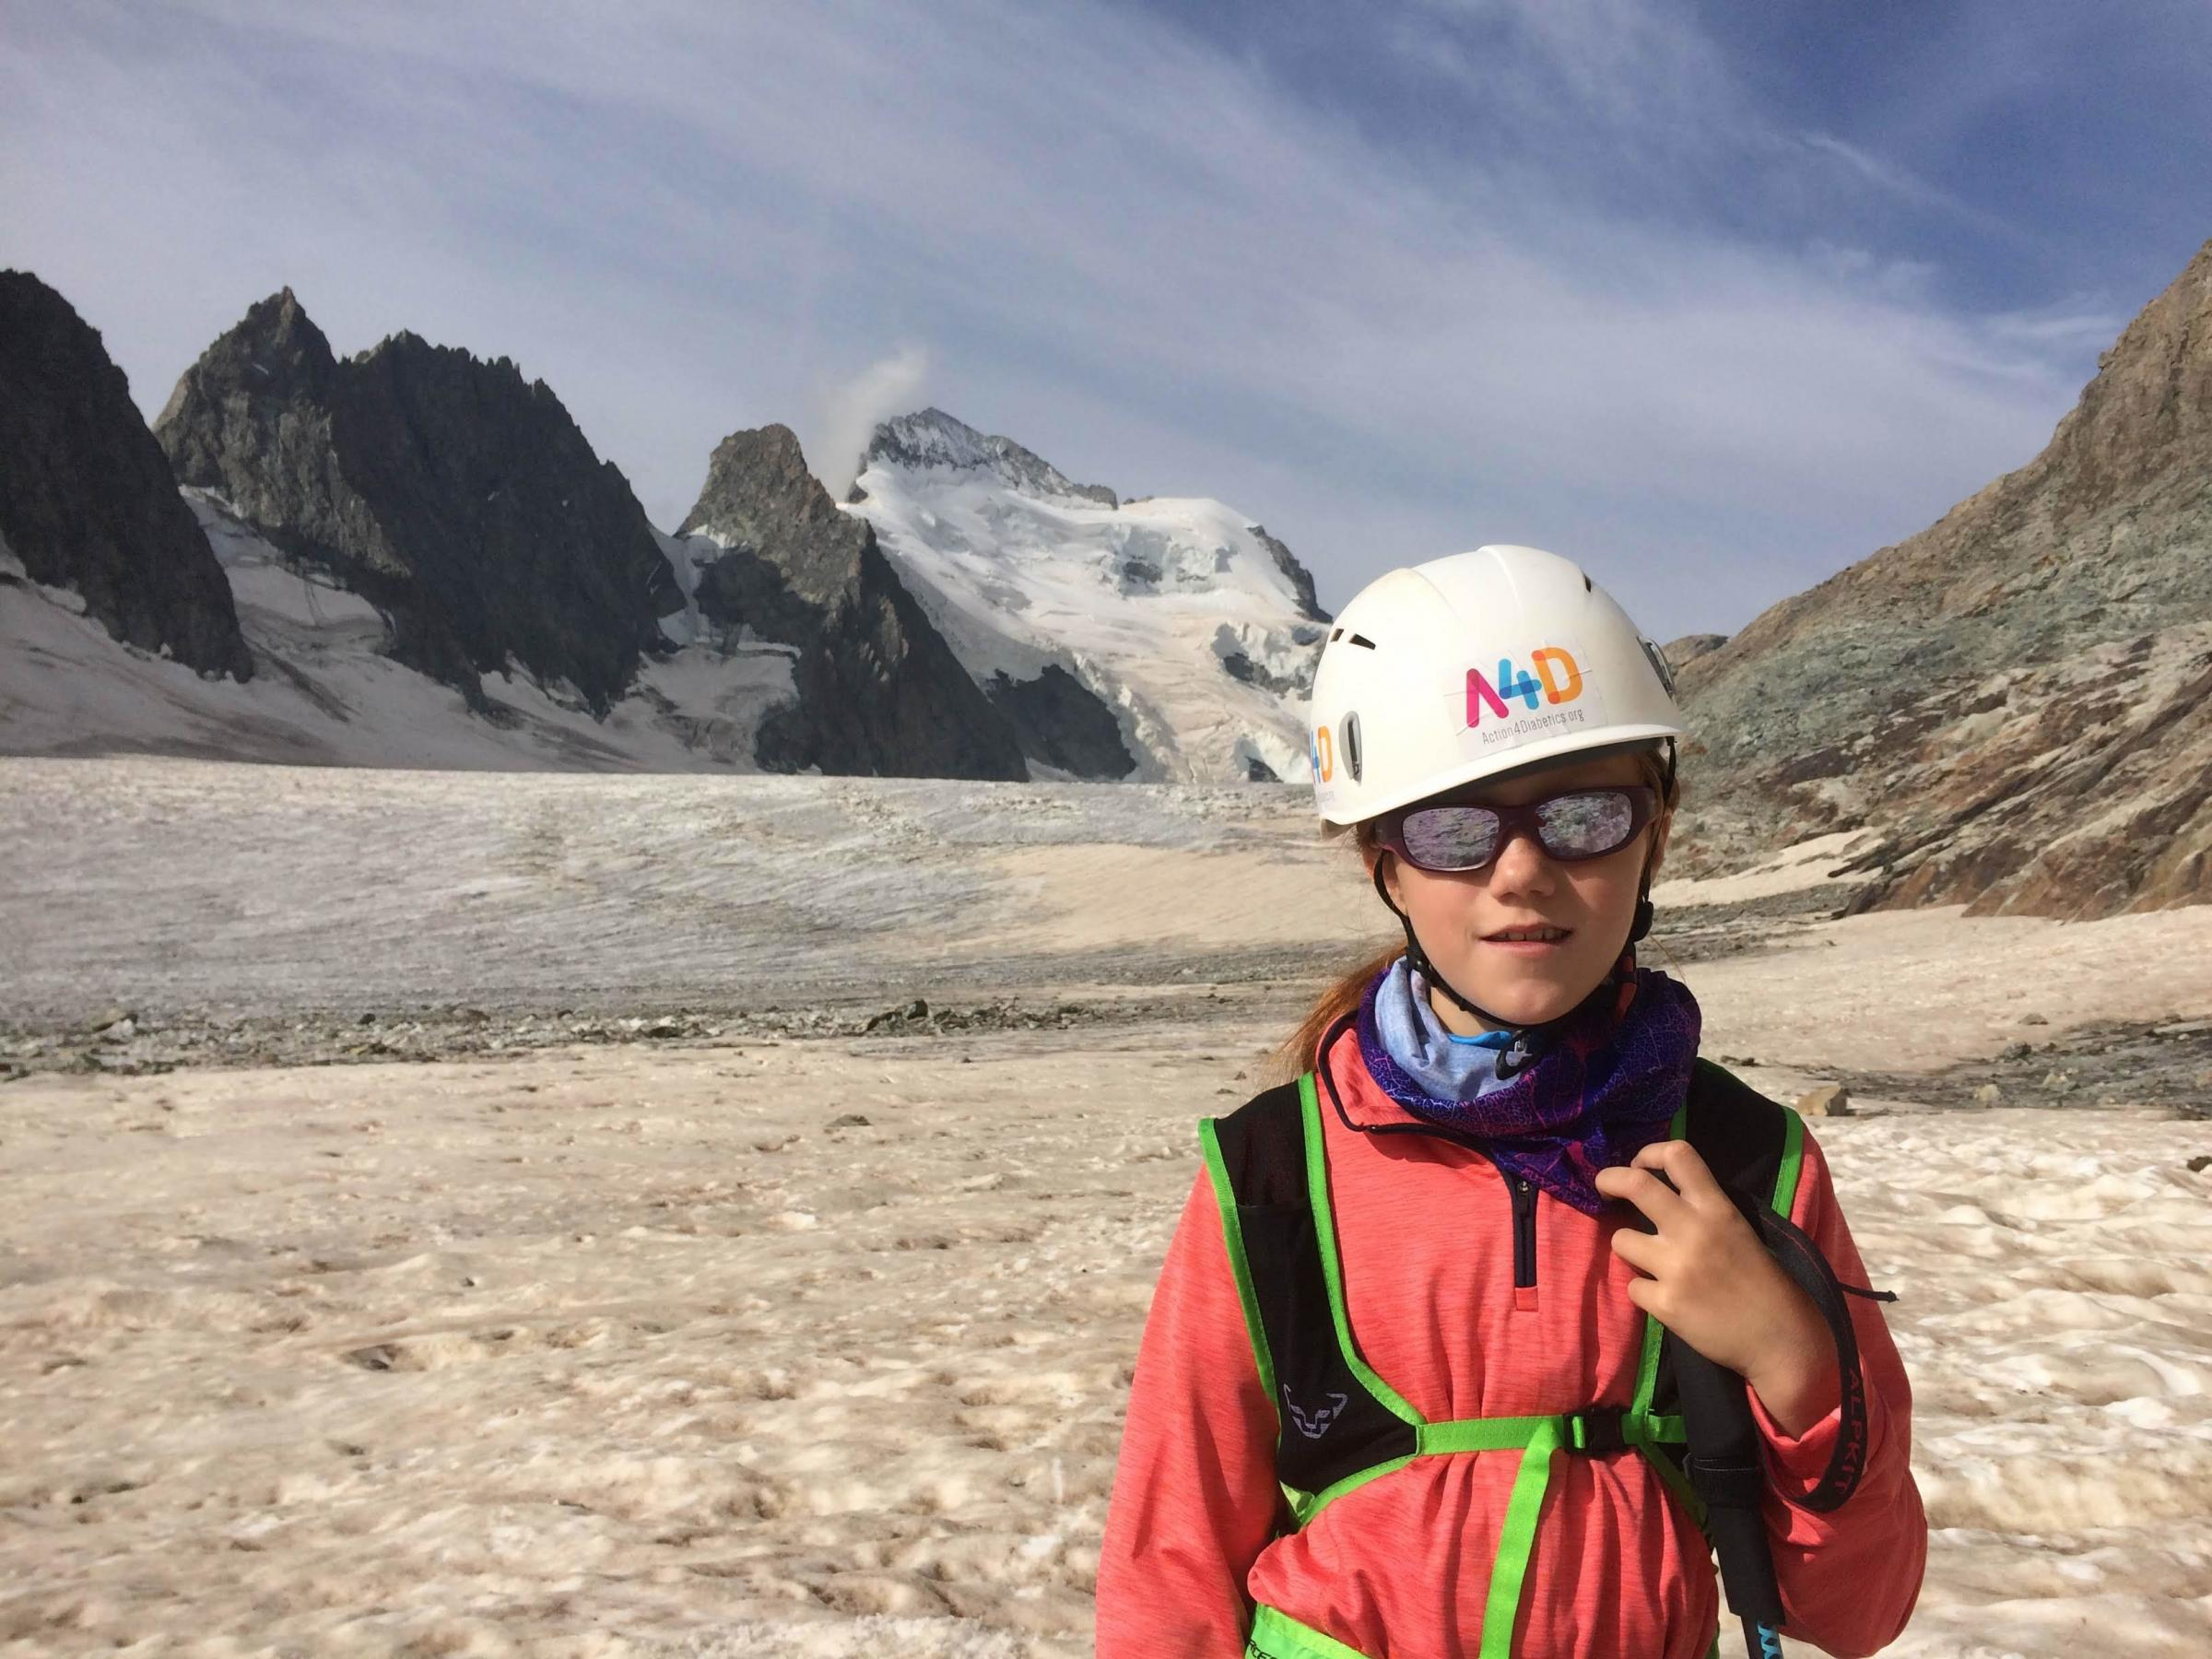 10-year-old takes on 4,000m Alp for charity